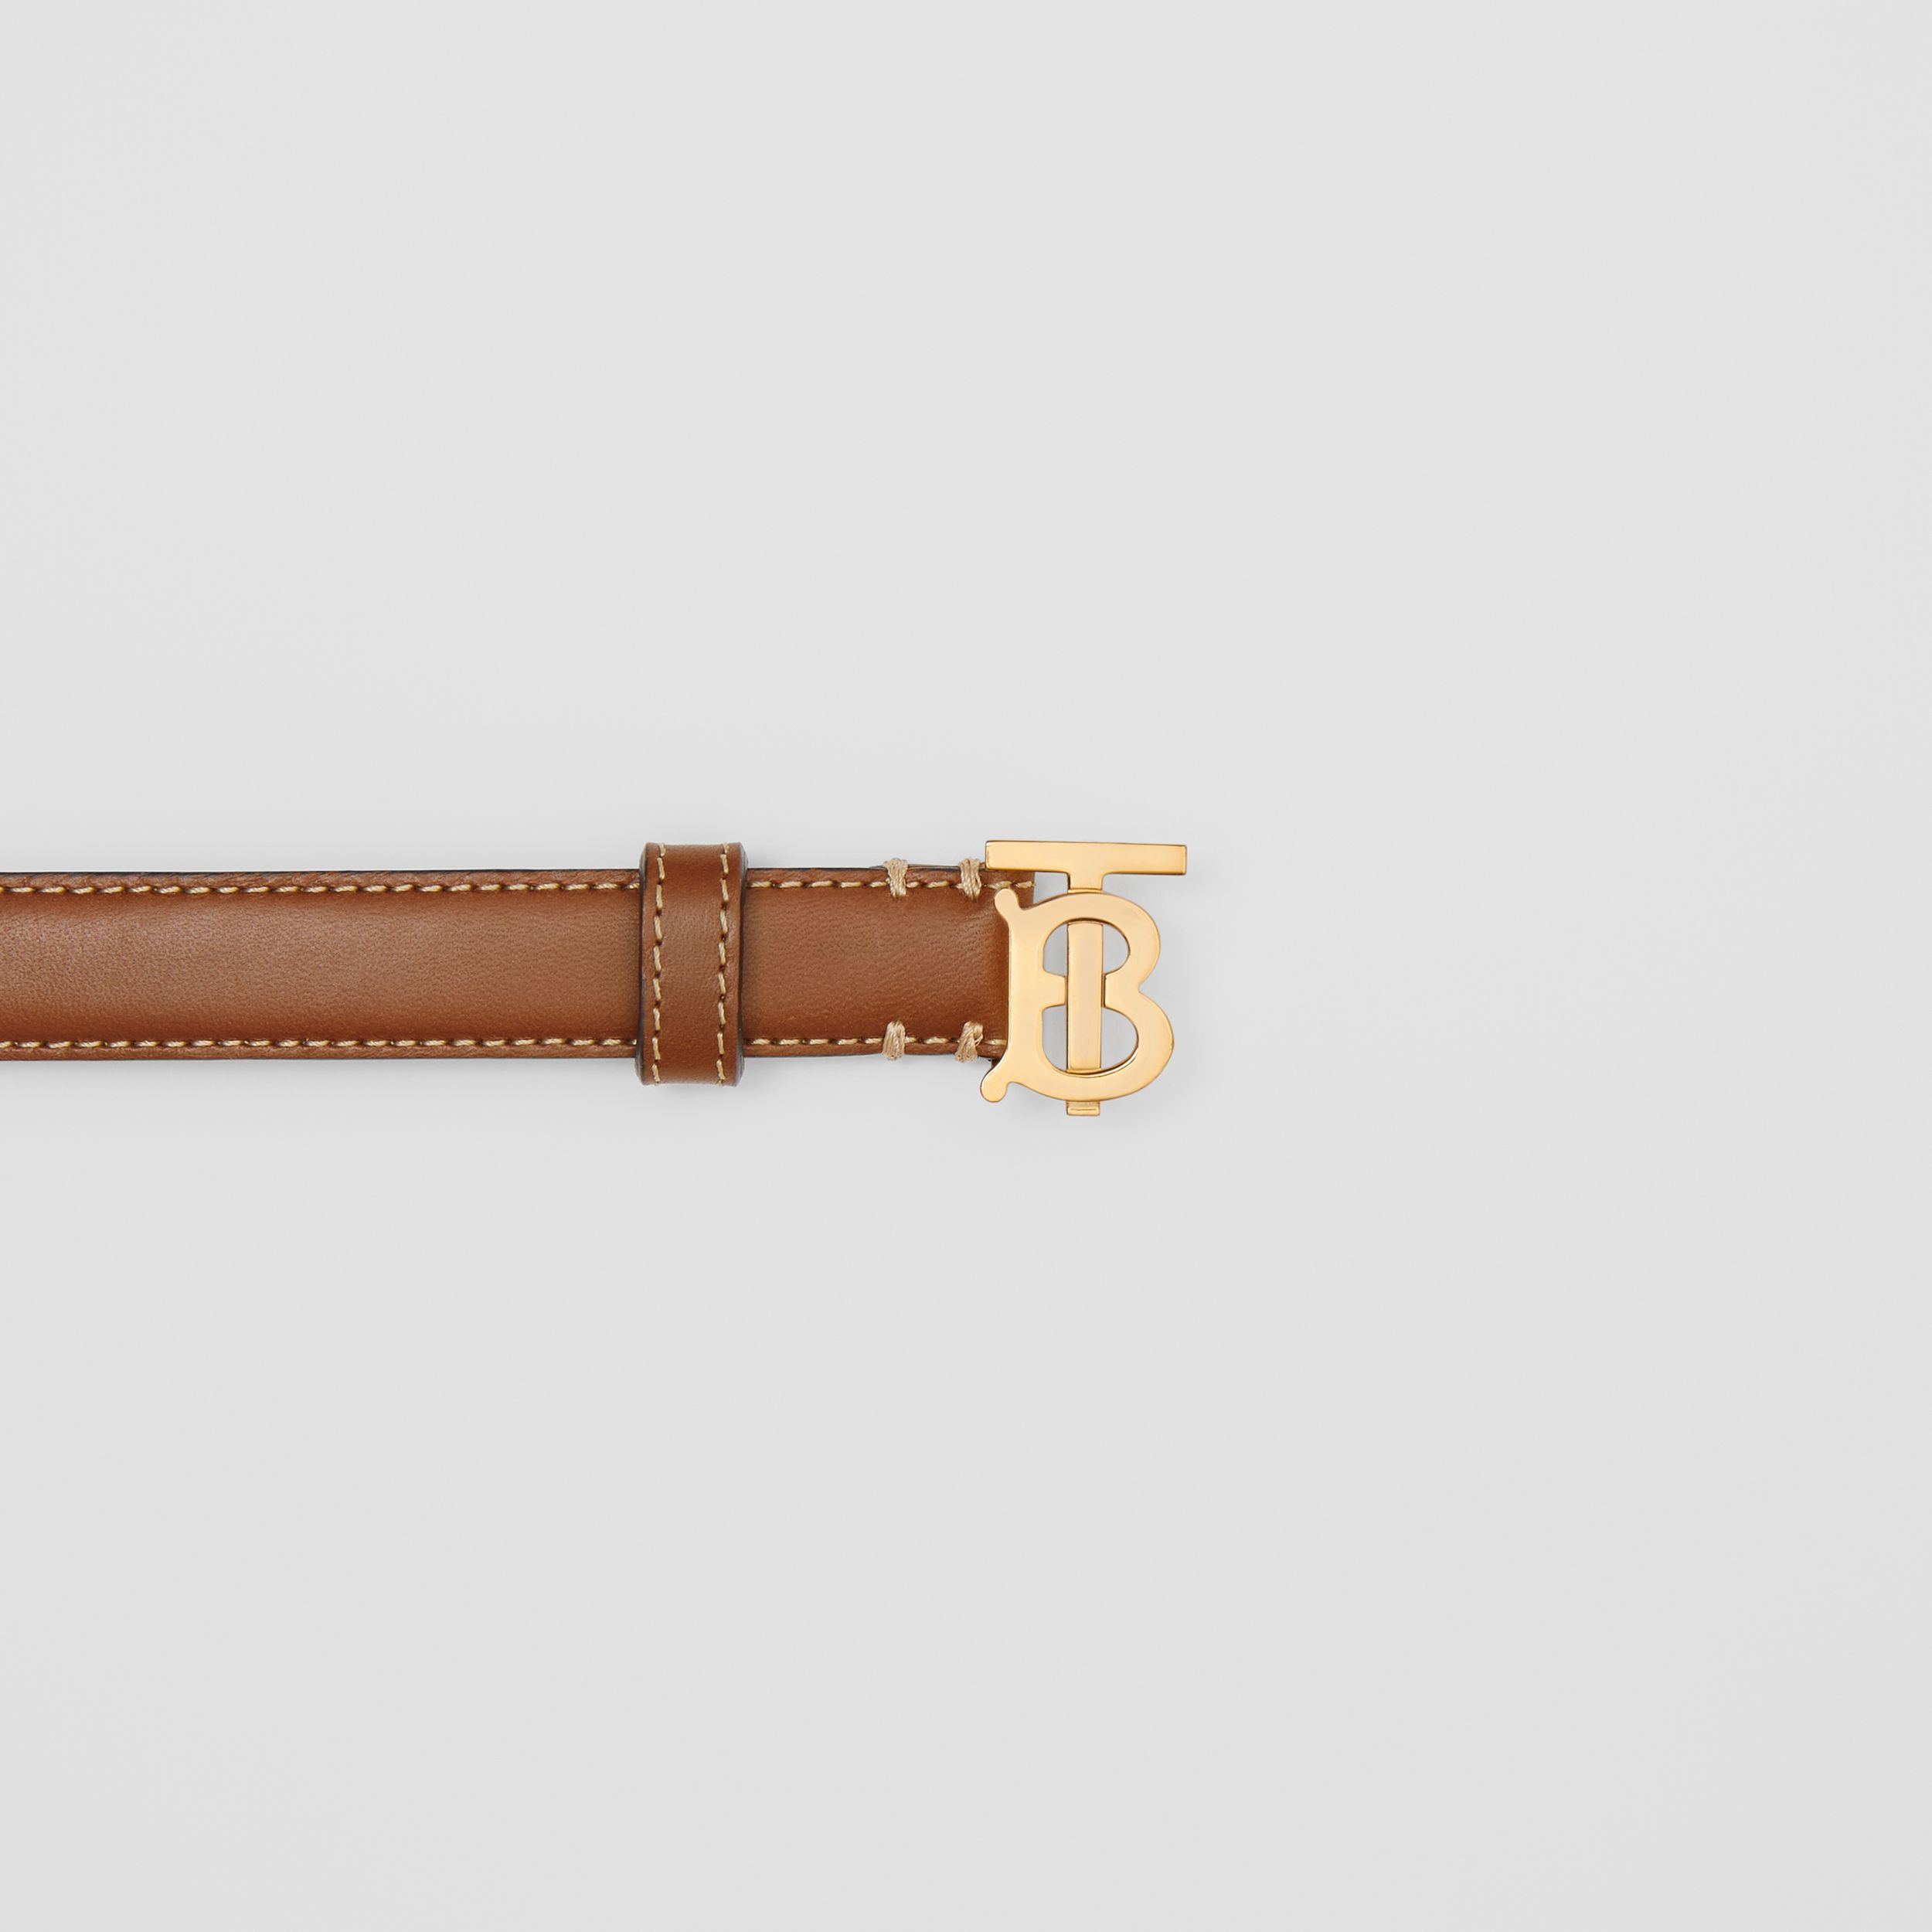 Monogram Motif Topstitched Leather Belt in Tan/light Gold - Women | Burberry - 2